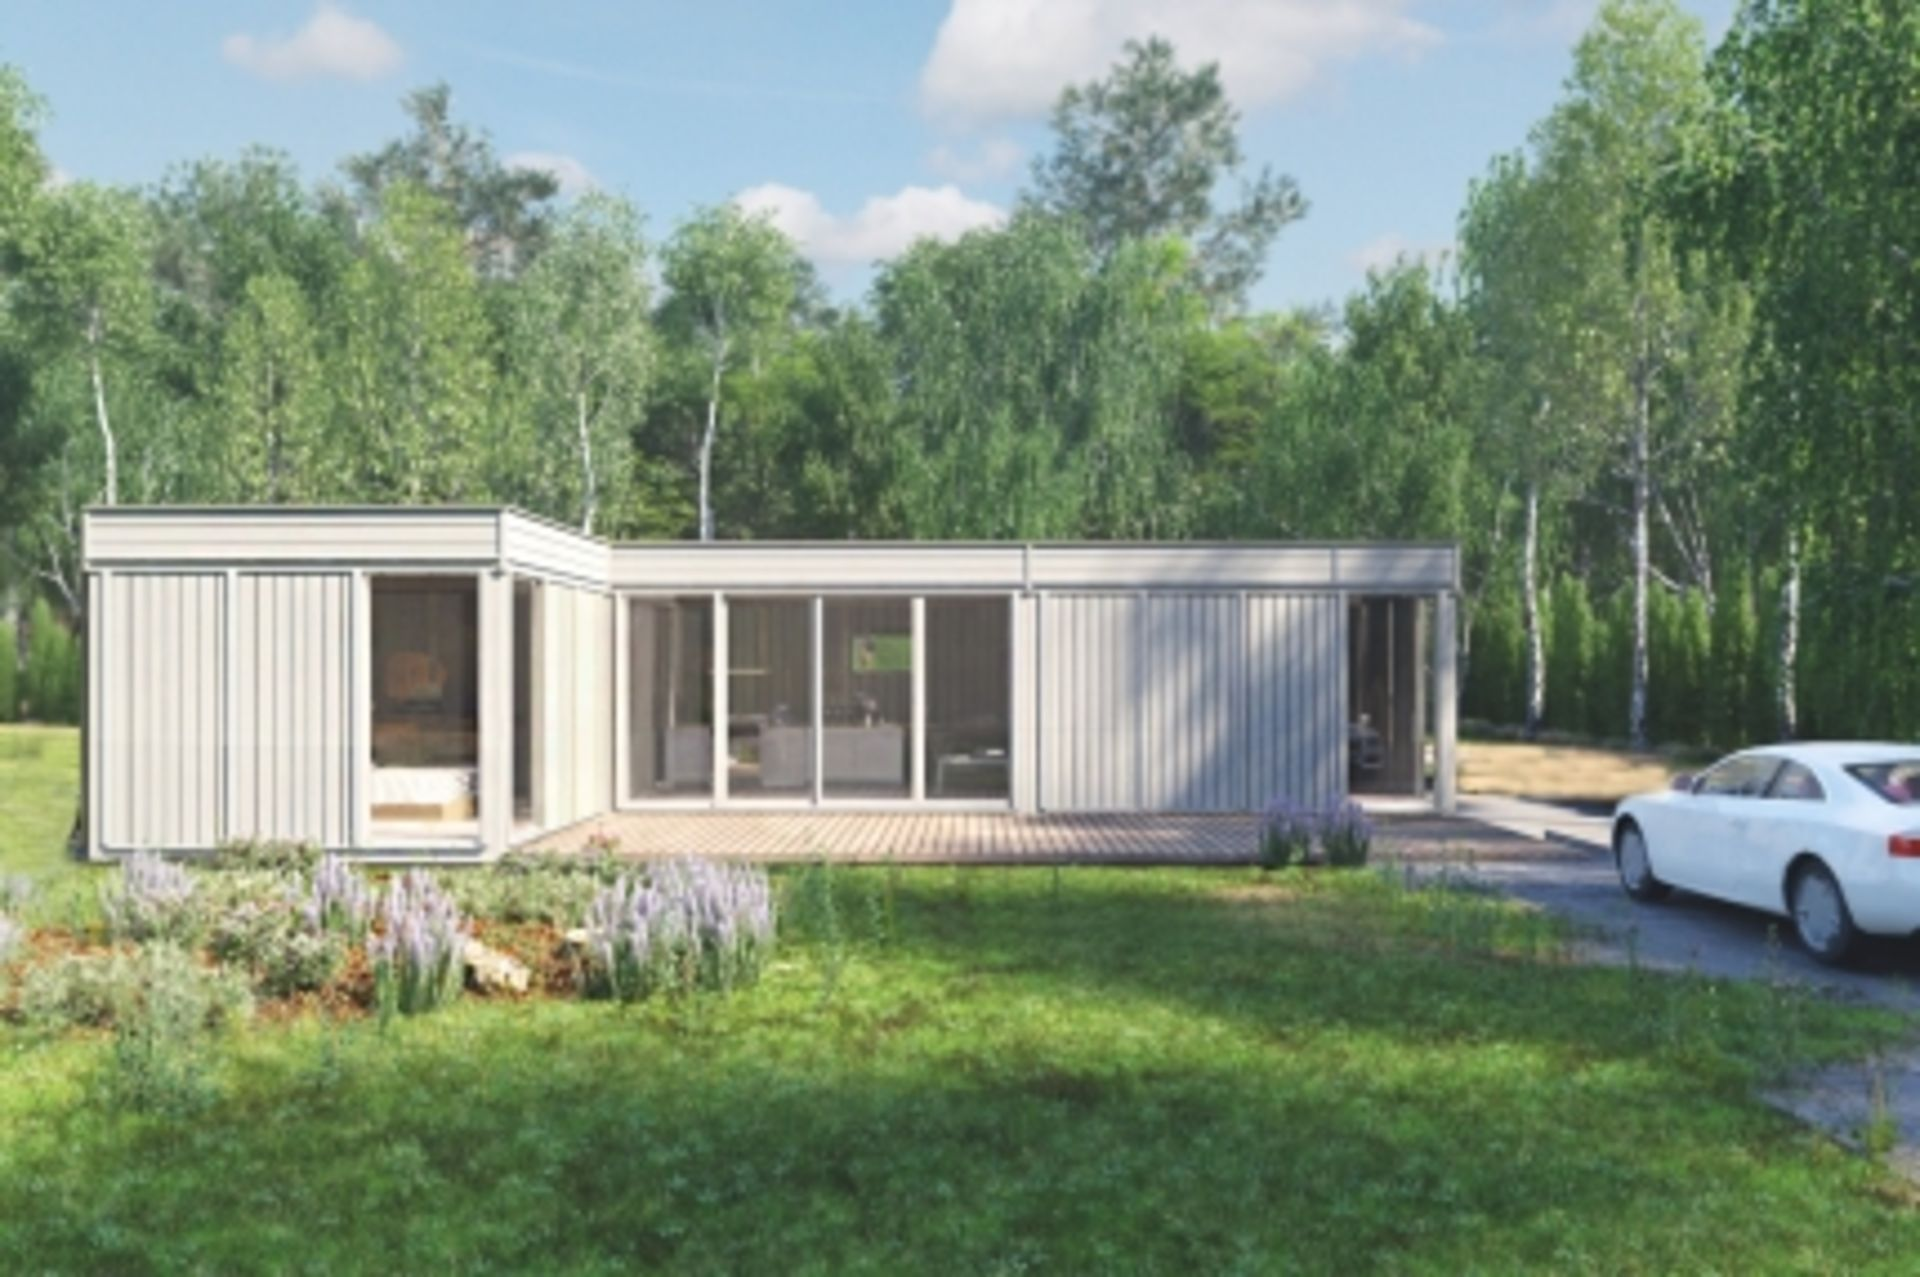 Lot 19001 - + VAT Brand New Glamping Cube 42 M2 L Shape - 4 Units Garden Cube Frames From Spruce 3 x 3m (2